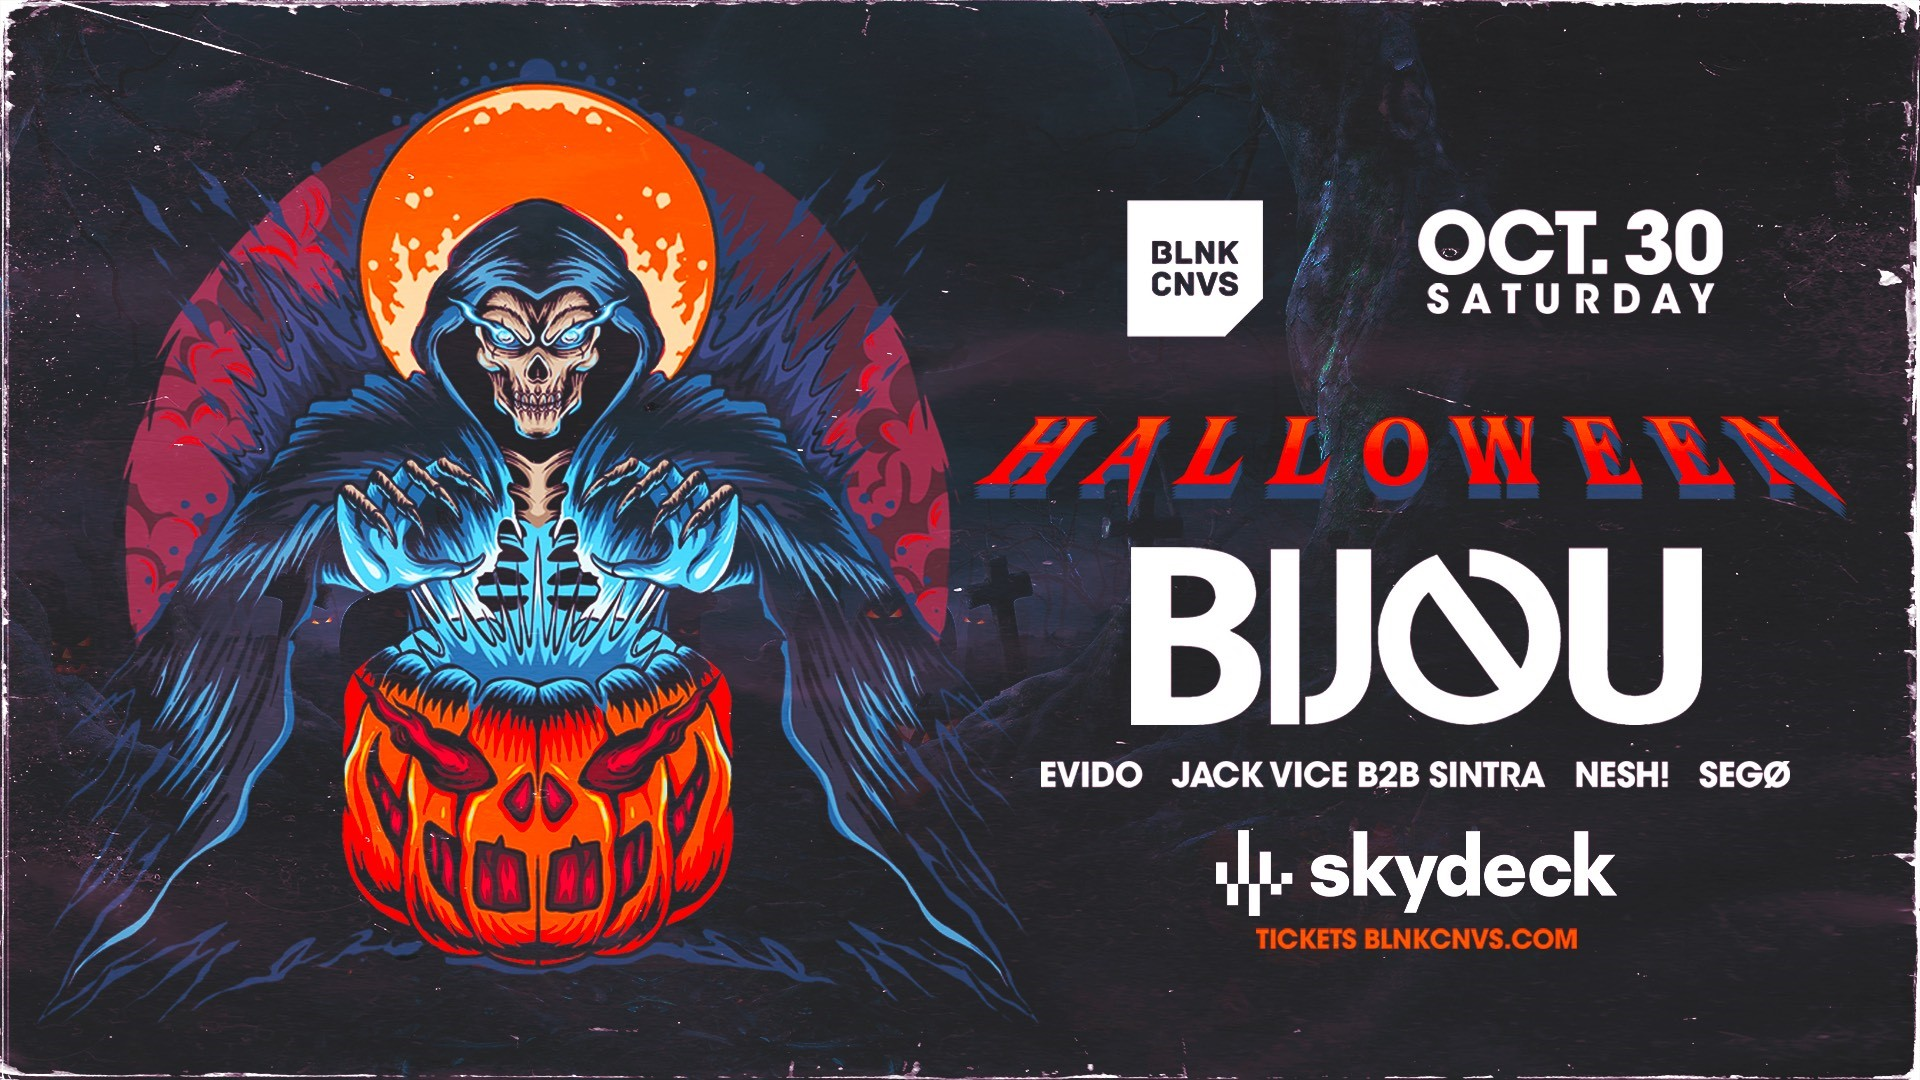 Promo image of Halloween Party on Skydeck